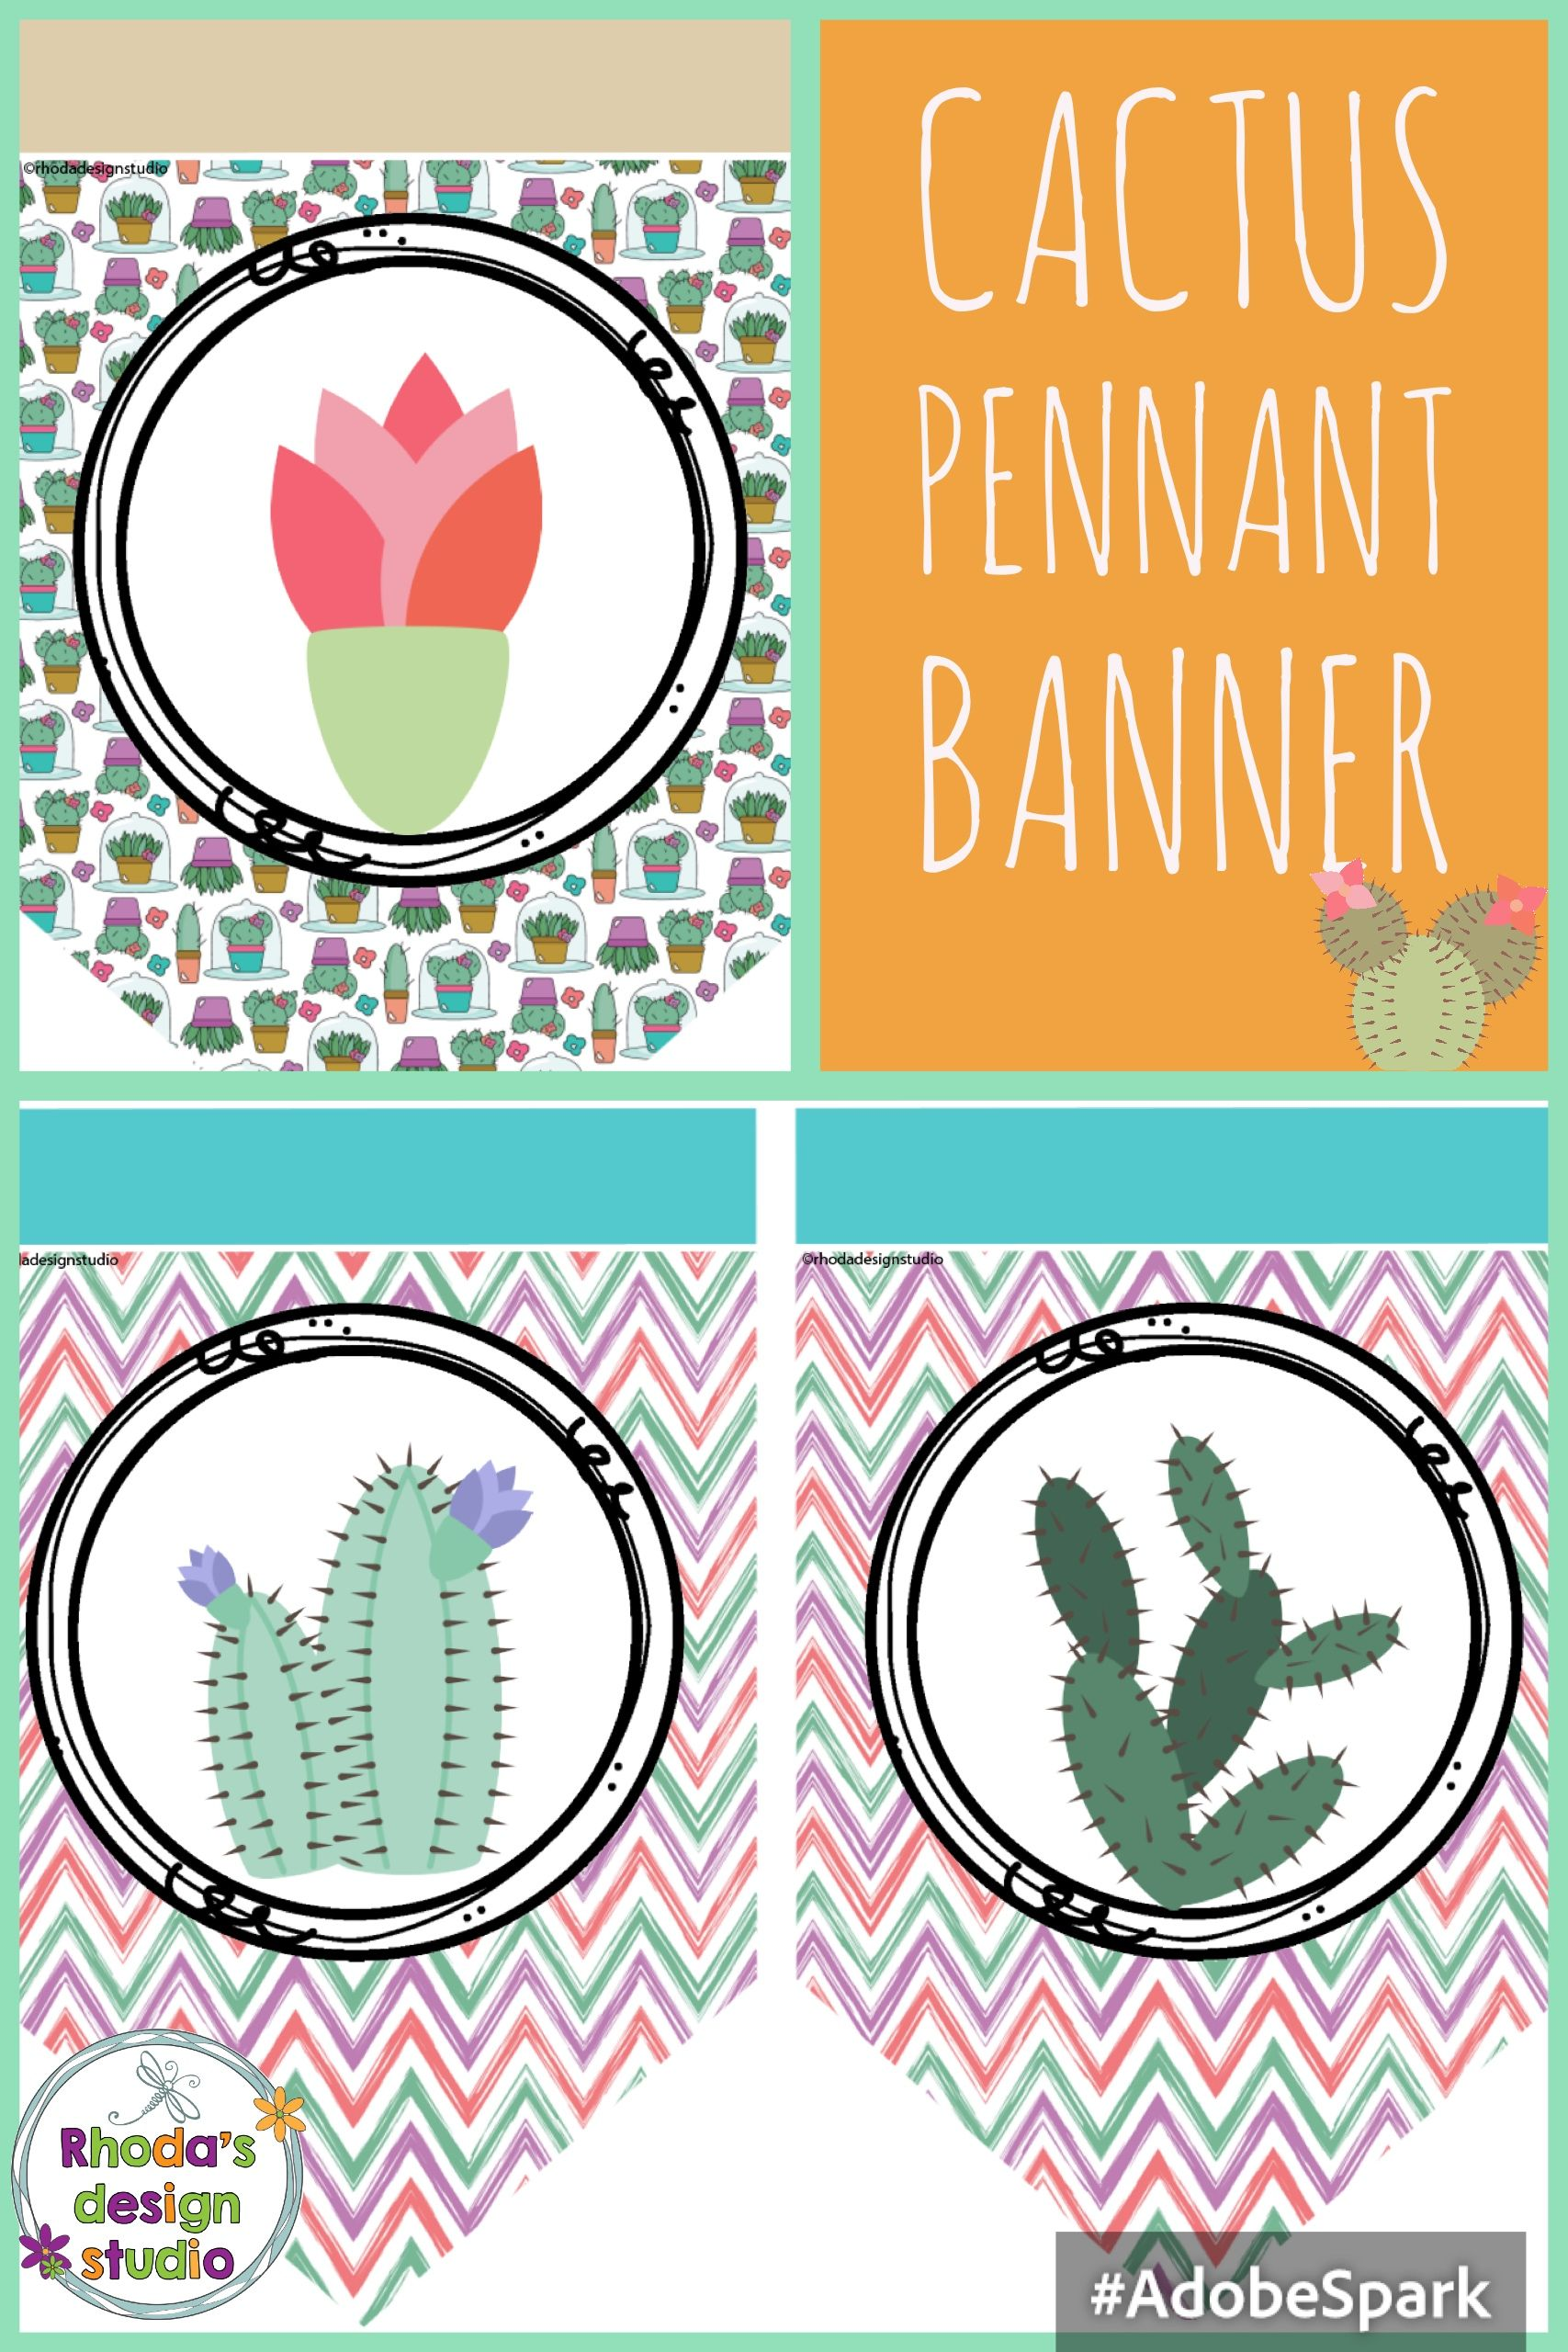 This Is A Printable Banner That Can Be Used For Home Decor Or Part Decorations Filled With